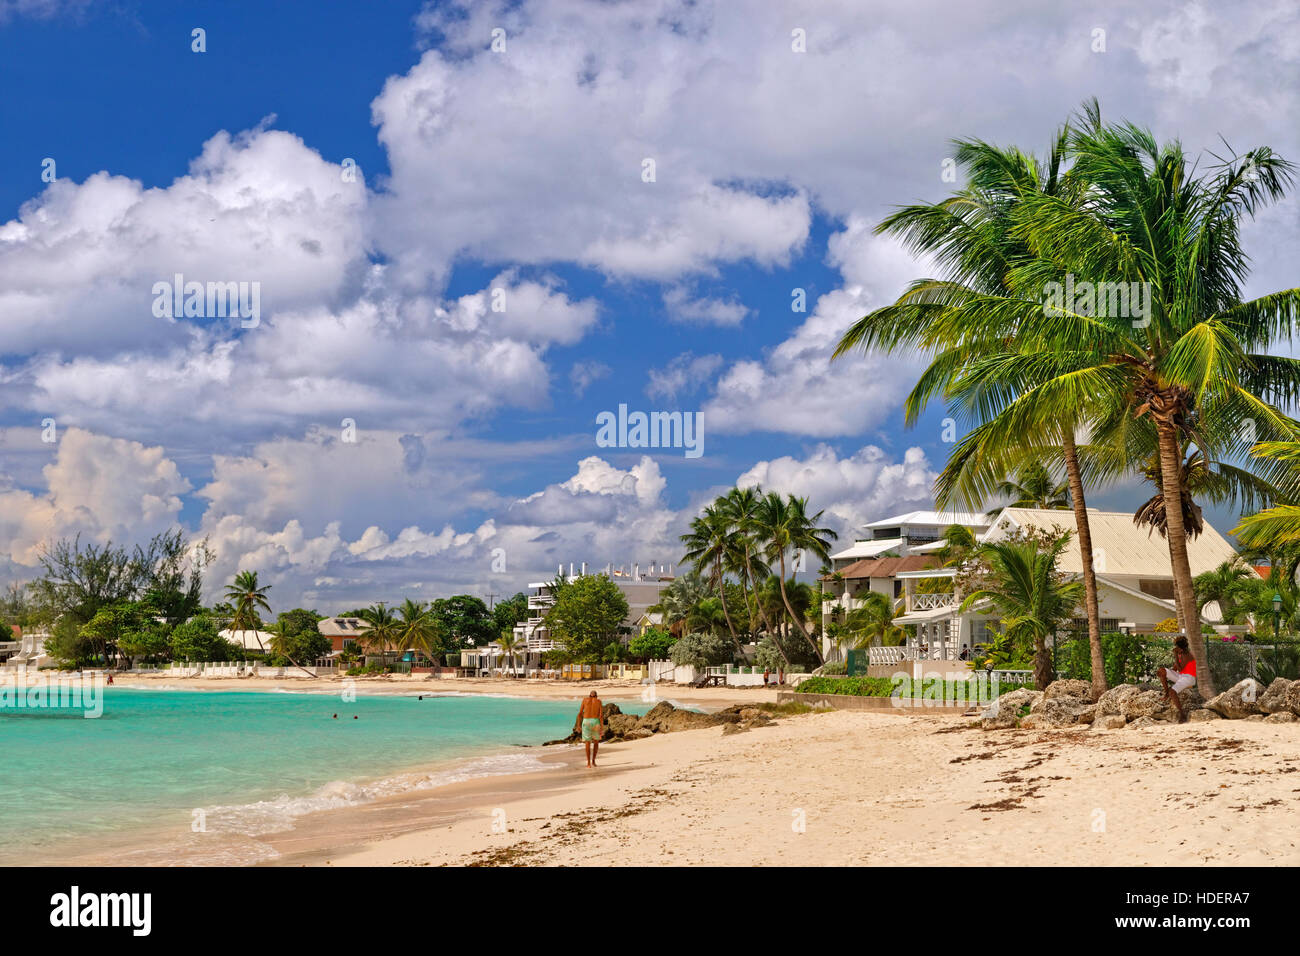 Worthing Beach at Worthing, between St. Lawrence Gap and Bridgetown, South coast, Barbados, Caribbean. - Stock Image